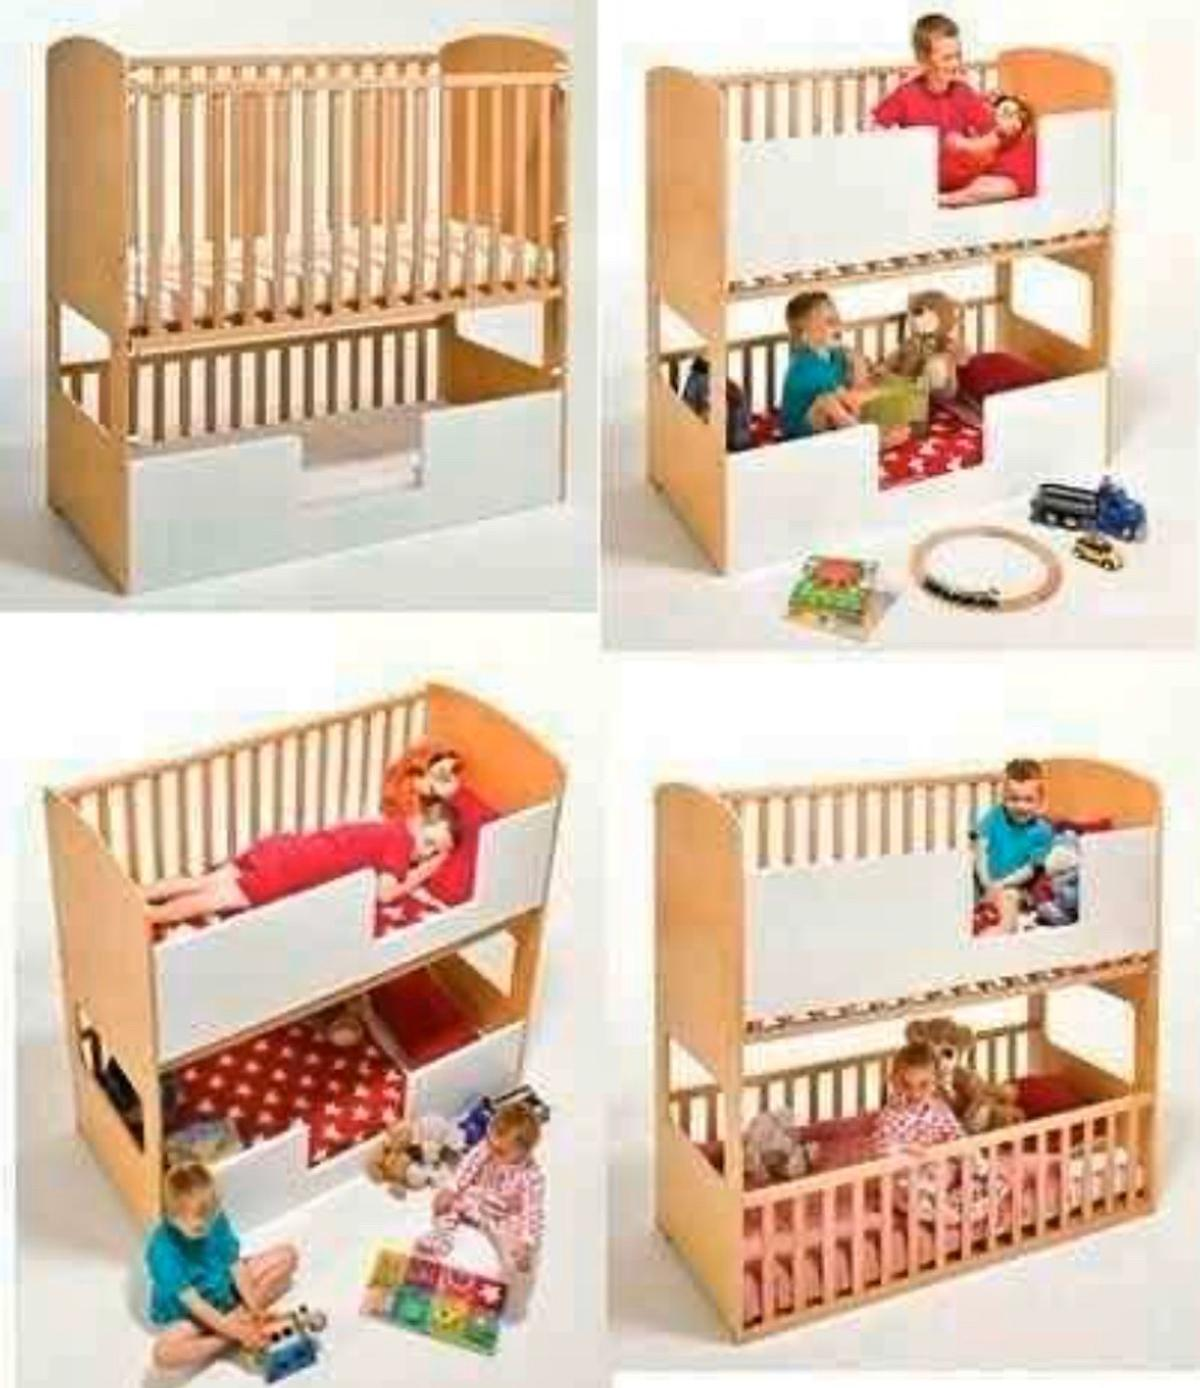 Shanti Cot Bunk Beds Cotbed Co Baby Bunkbed In Sm1 Sutton For 175 00 For Sale Shpock